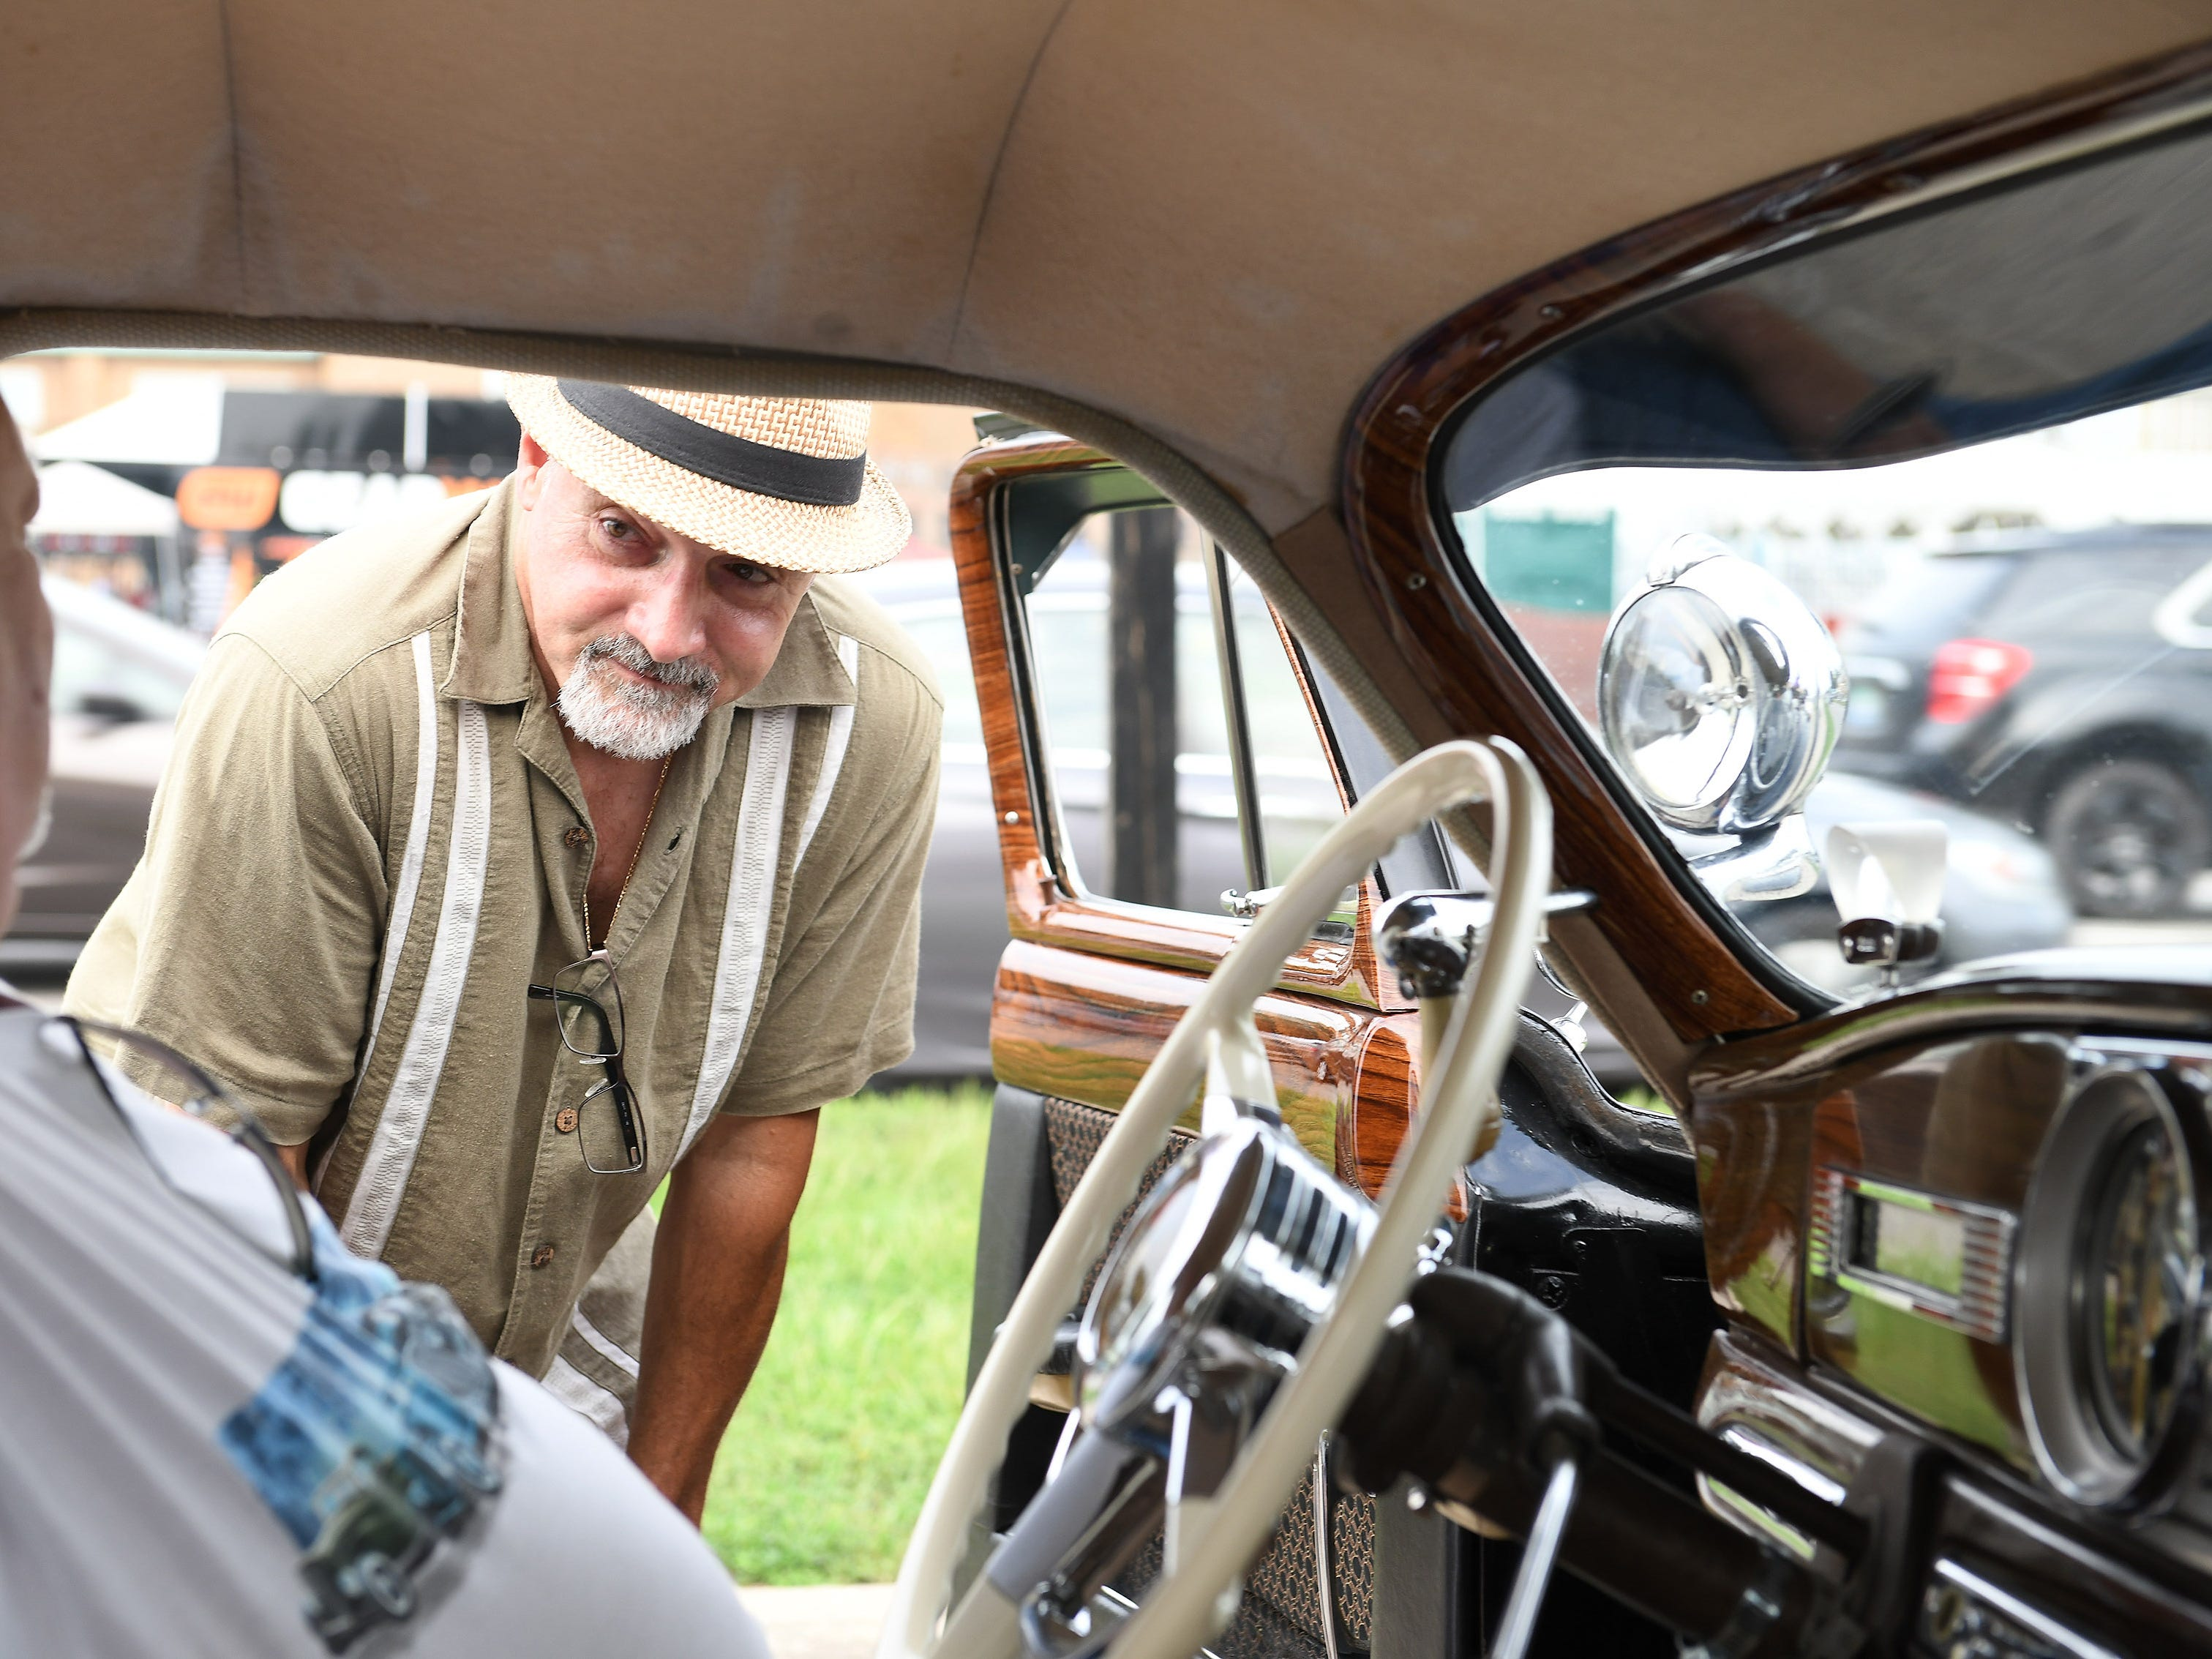 Duane Sabella of New Baltimore, right, talks with fellow Hudson owner John Albert of Cortland, Ohio, while Albert sits in Sabella's 1950 Hudson Super Six. Sabella's most recent project was redoing the car's interior.